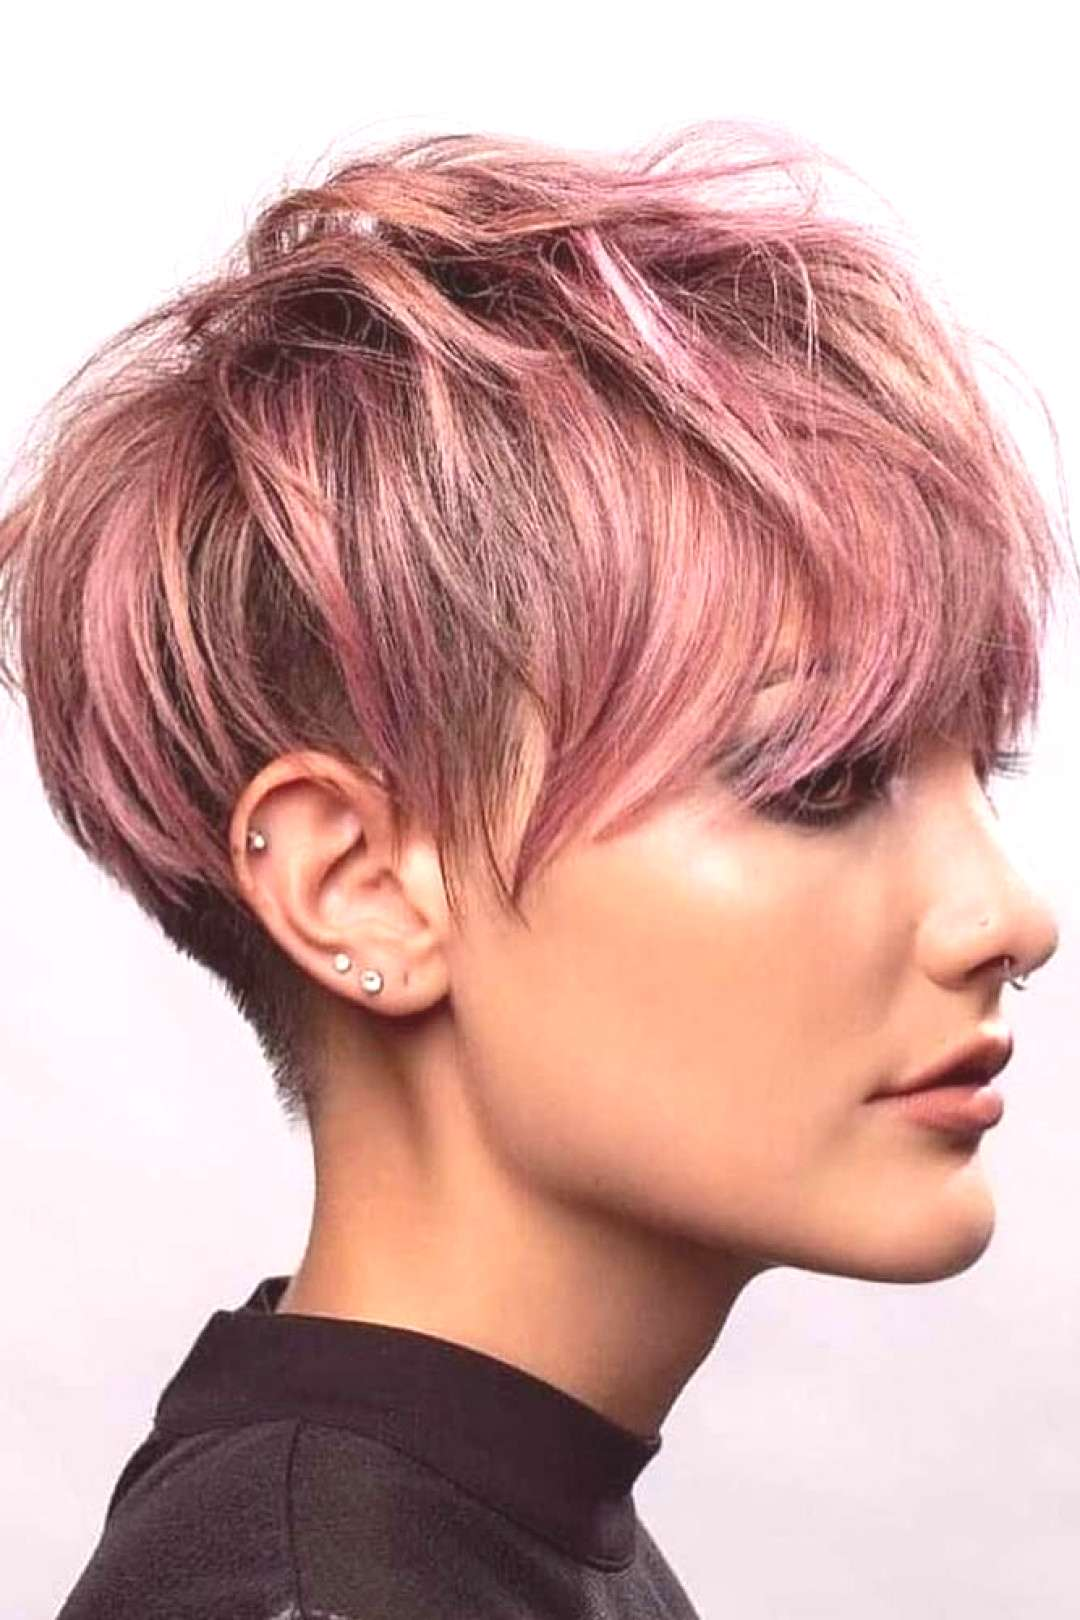 52 Long Cut Looks For The New Season | LoveHairStyles